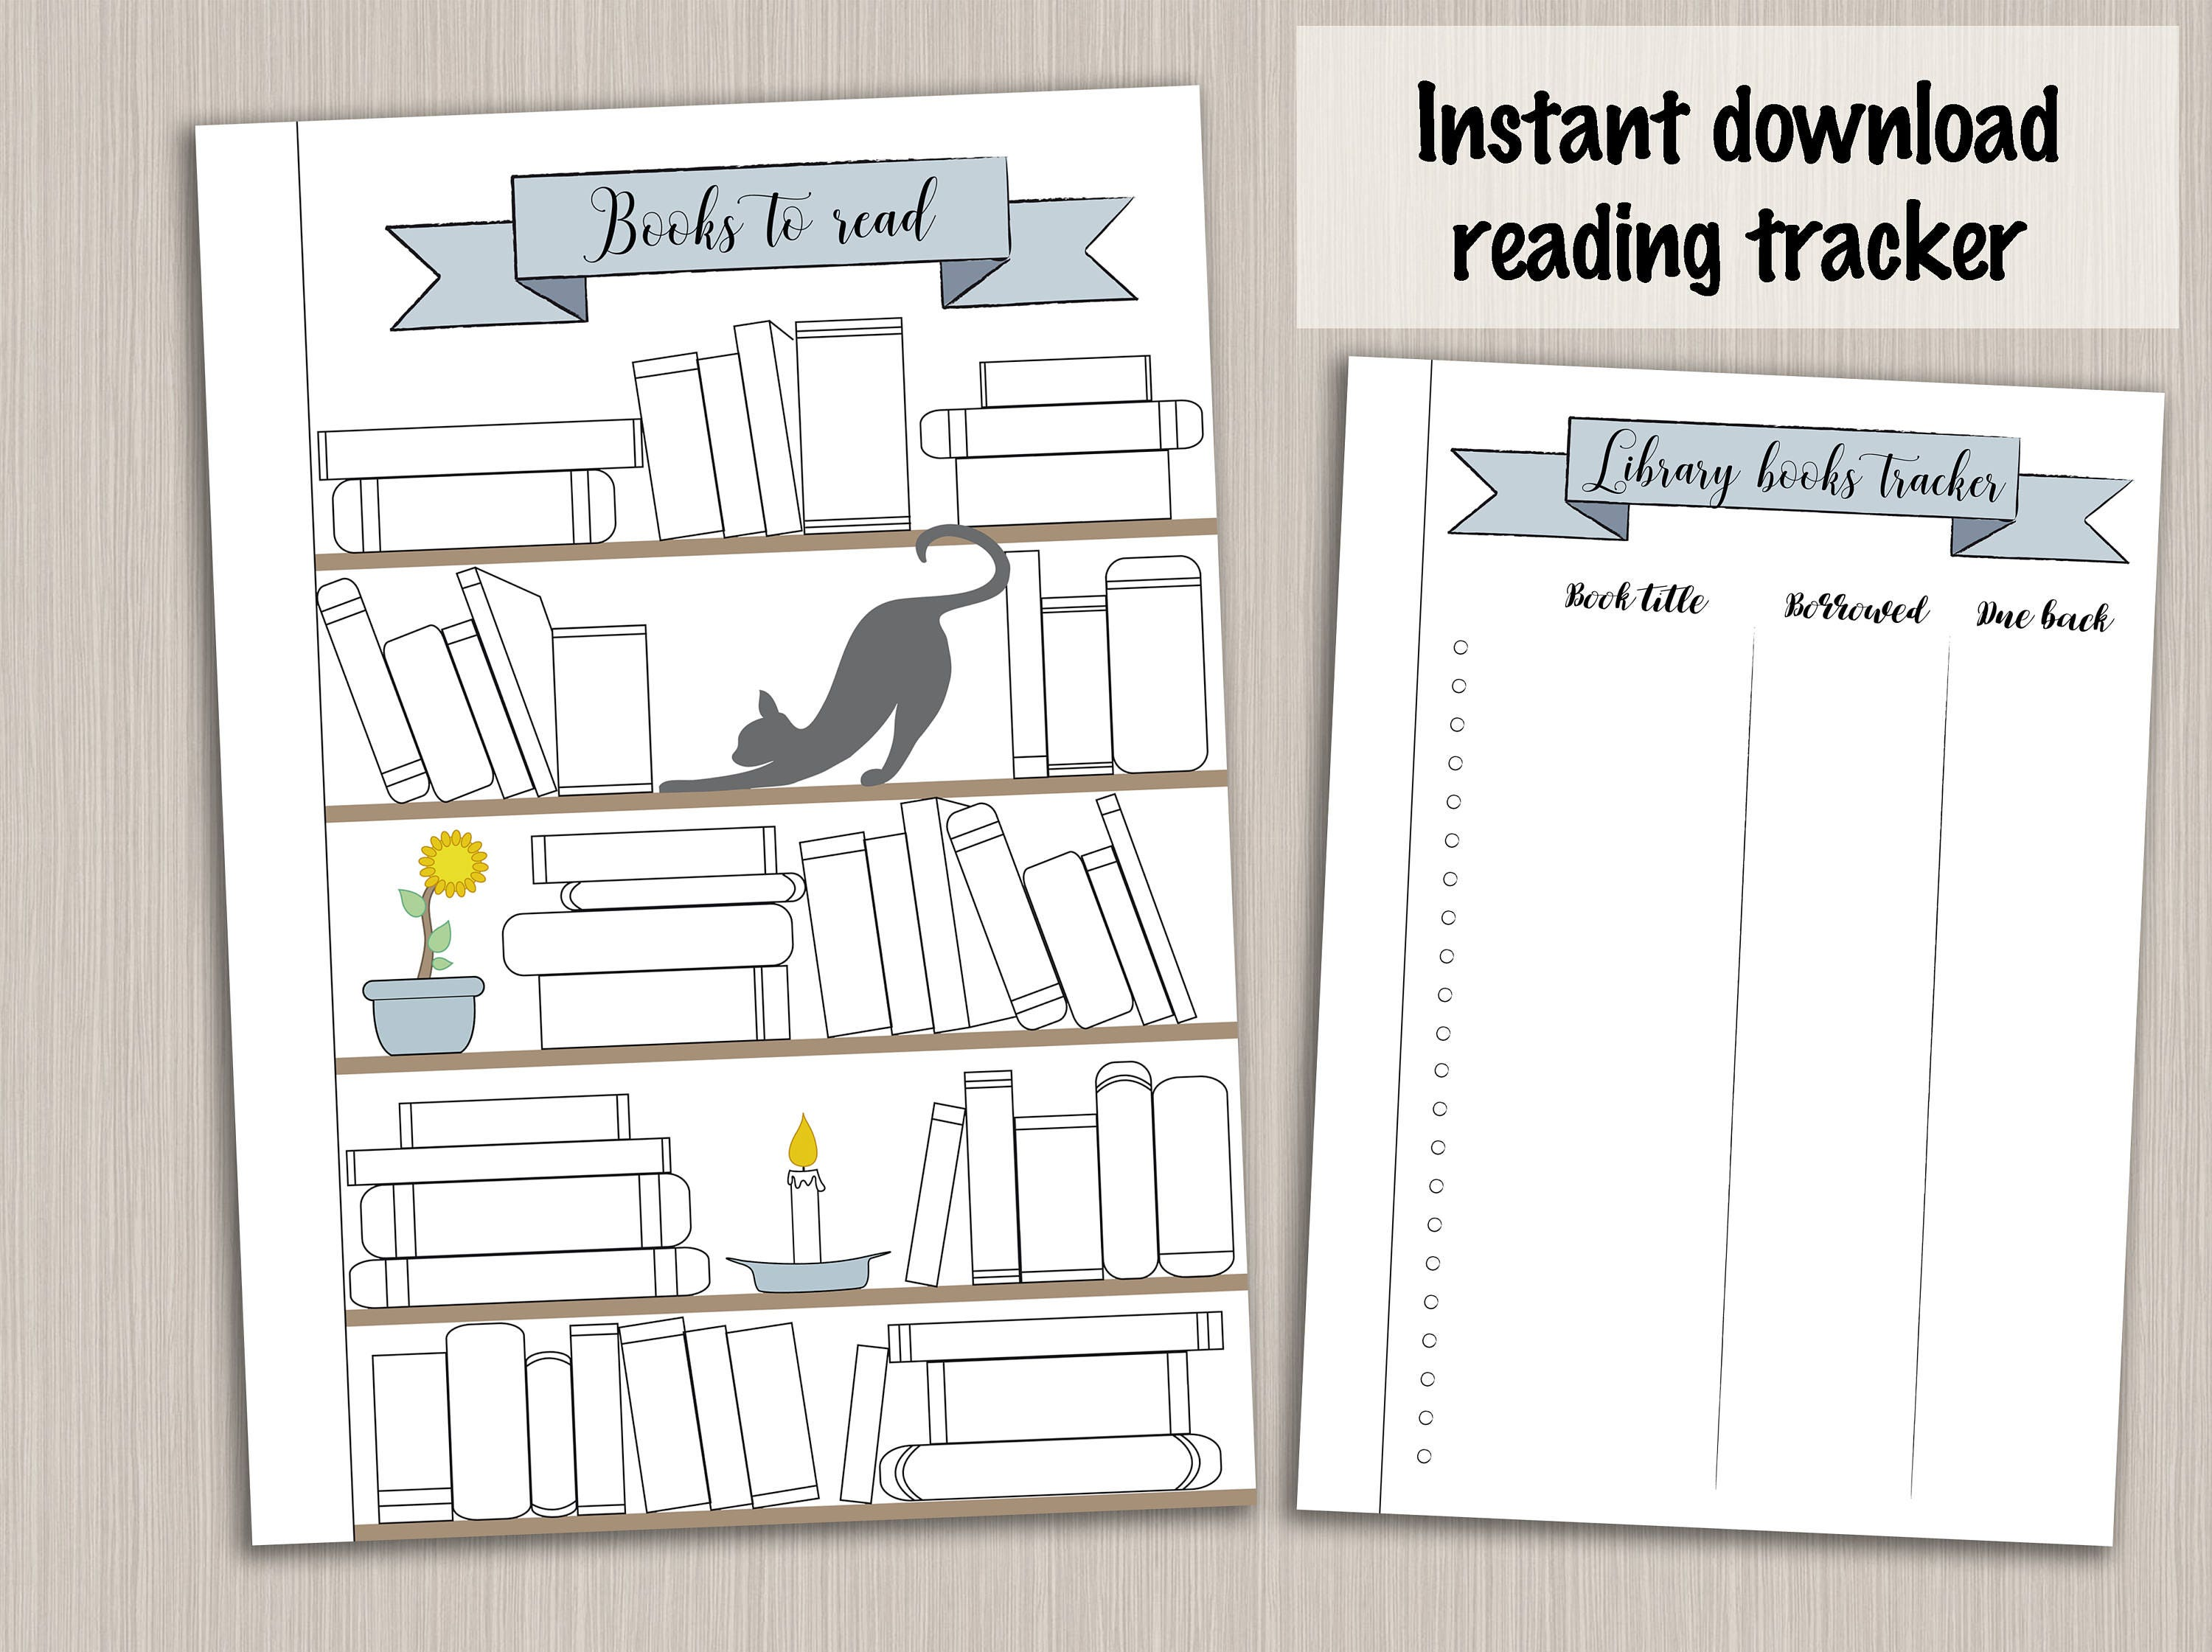 photo about Bullet Journal Books to Read Printable titled Bullet magazine template : looking at planner template studying log tracker - bujo bullet magazine webpages - bullet magazine printable increase